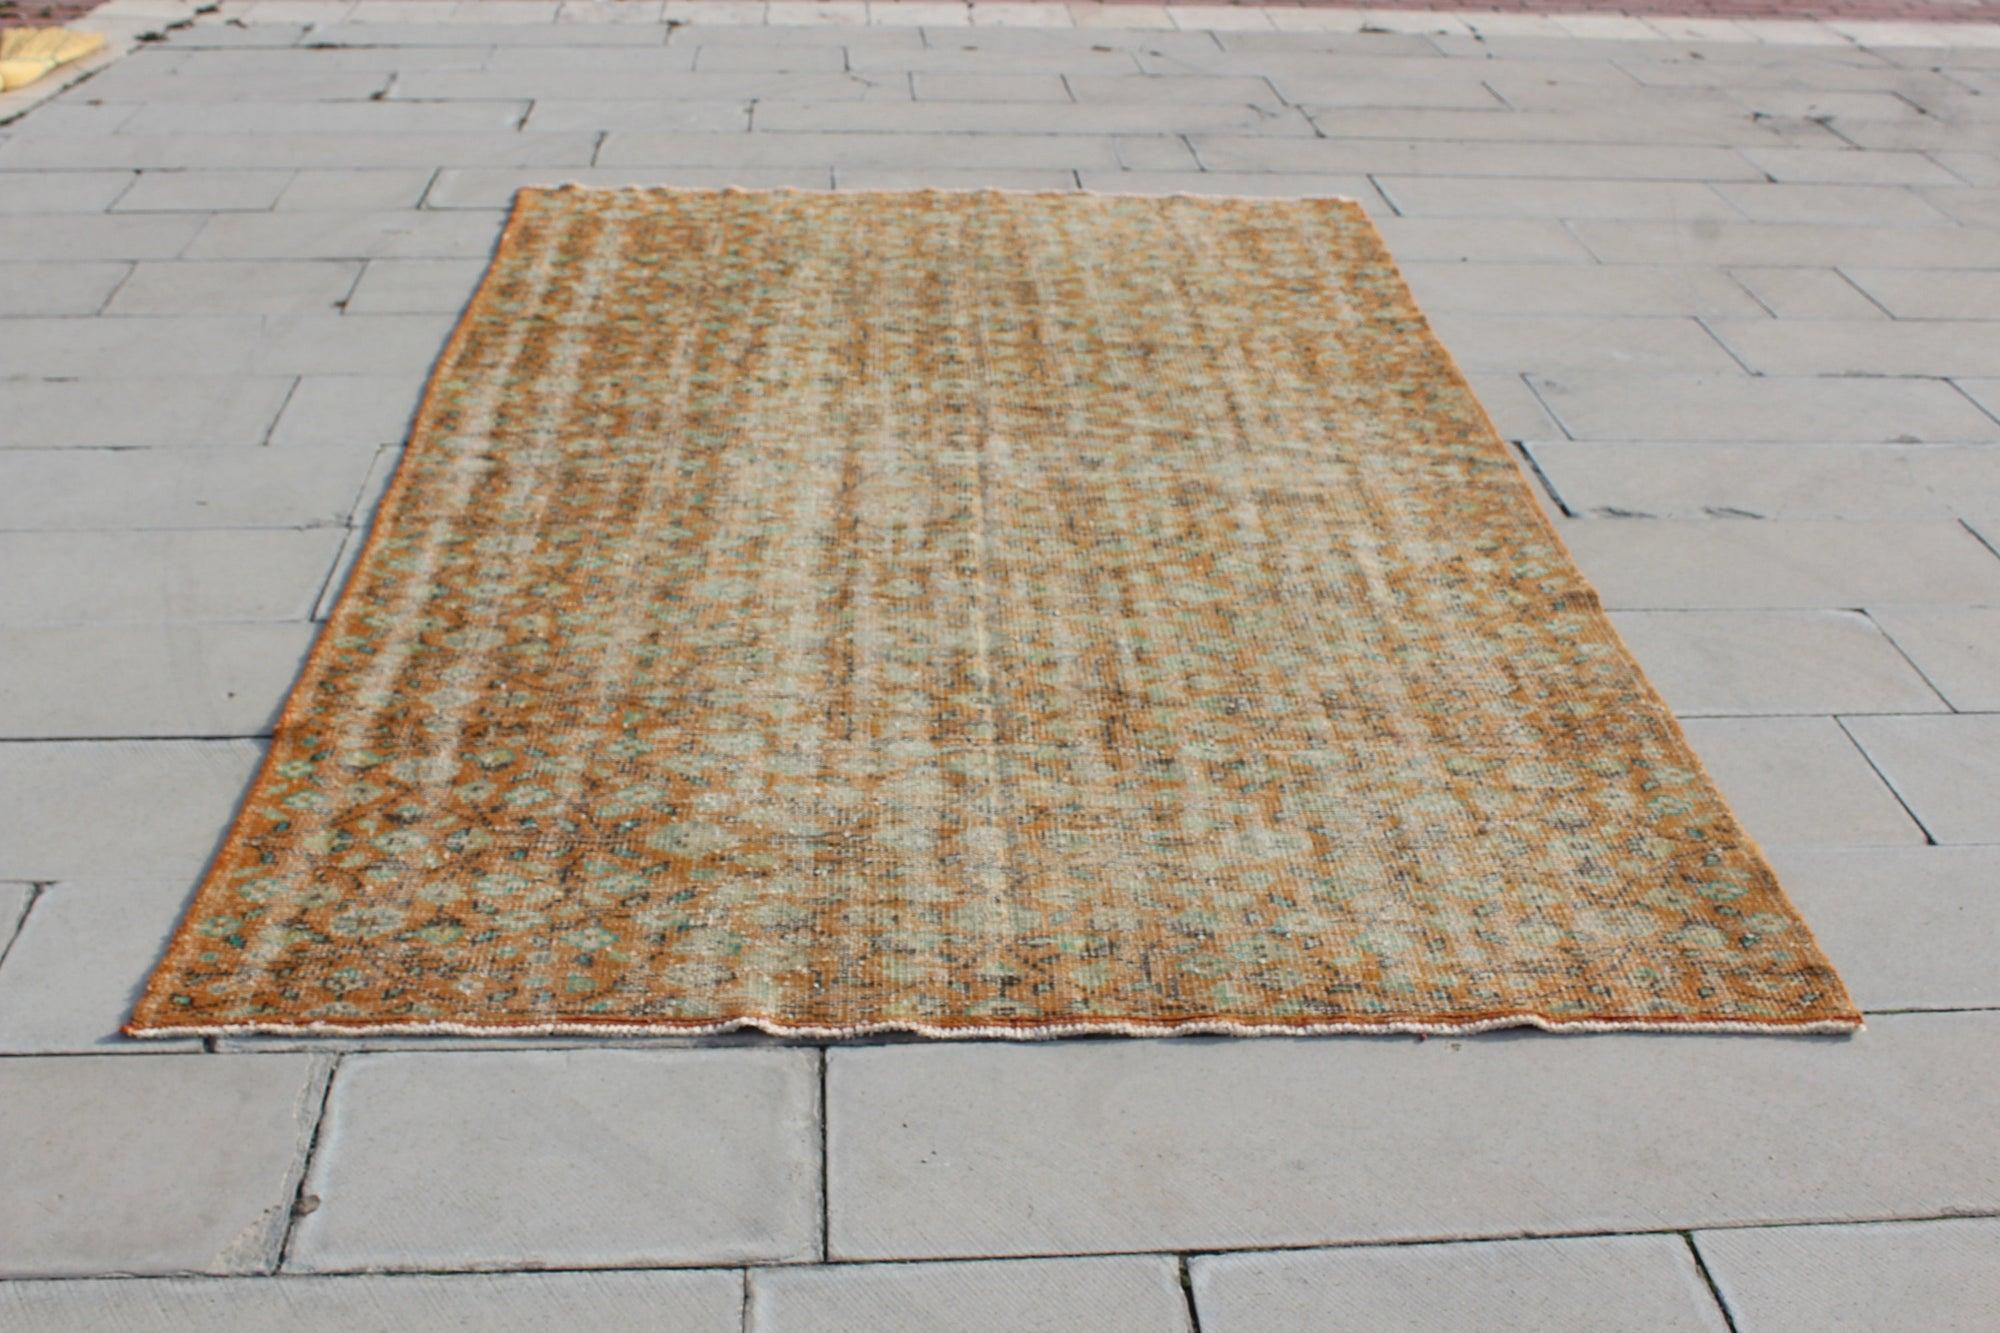 Turkey Rug, Vintage Oushak   Bohemian Turkish Rug, Handmade Turkish Carpet, Oriental Hand Knotted Rug,   5.9 x 9.1  Feet AG961